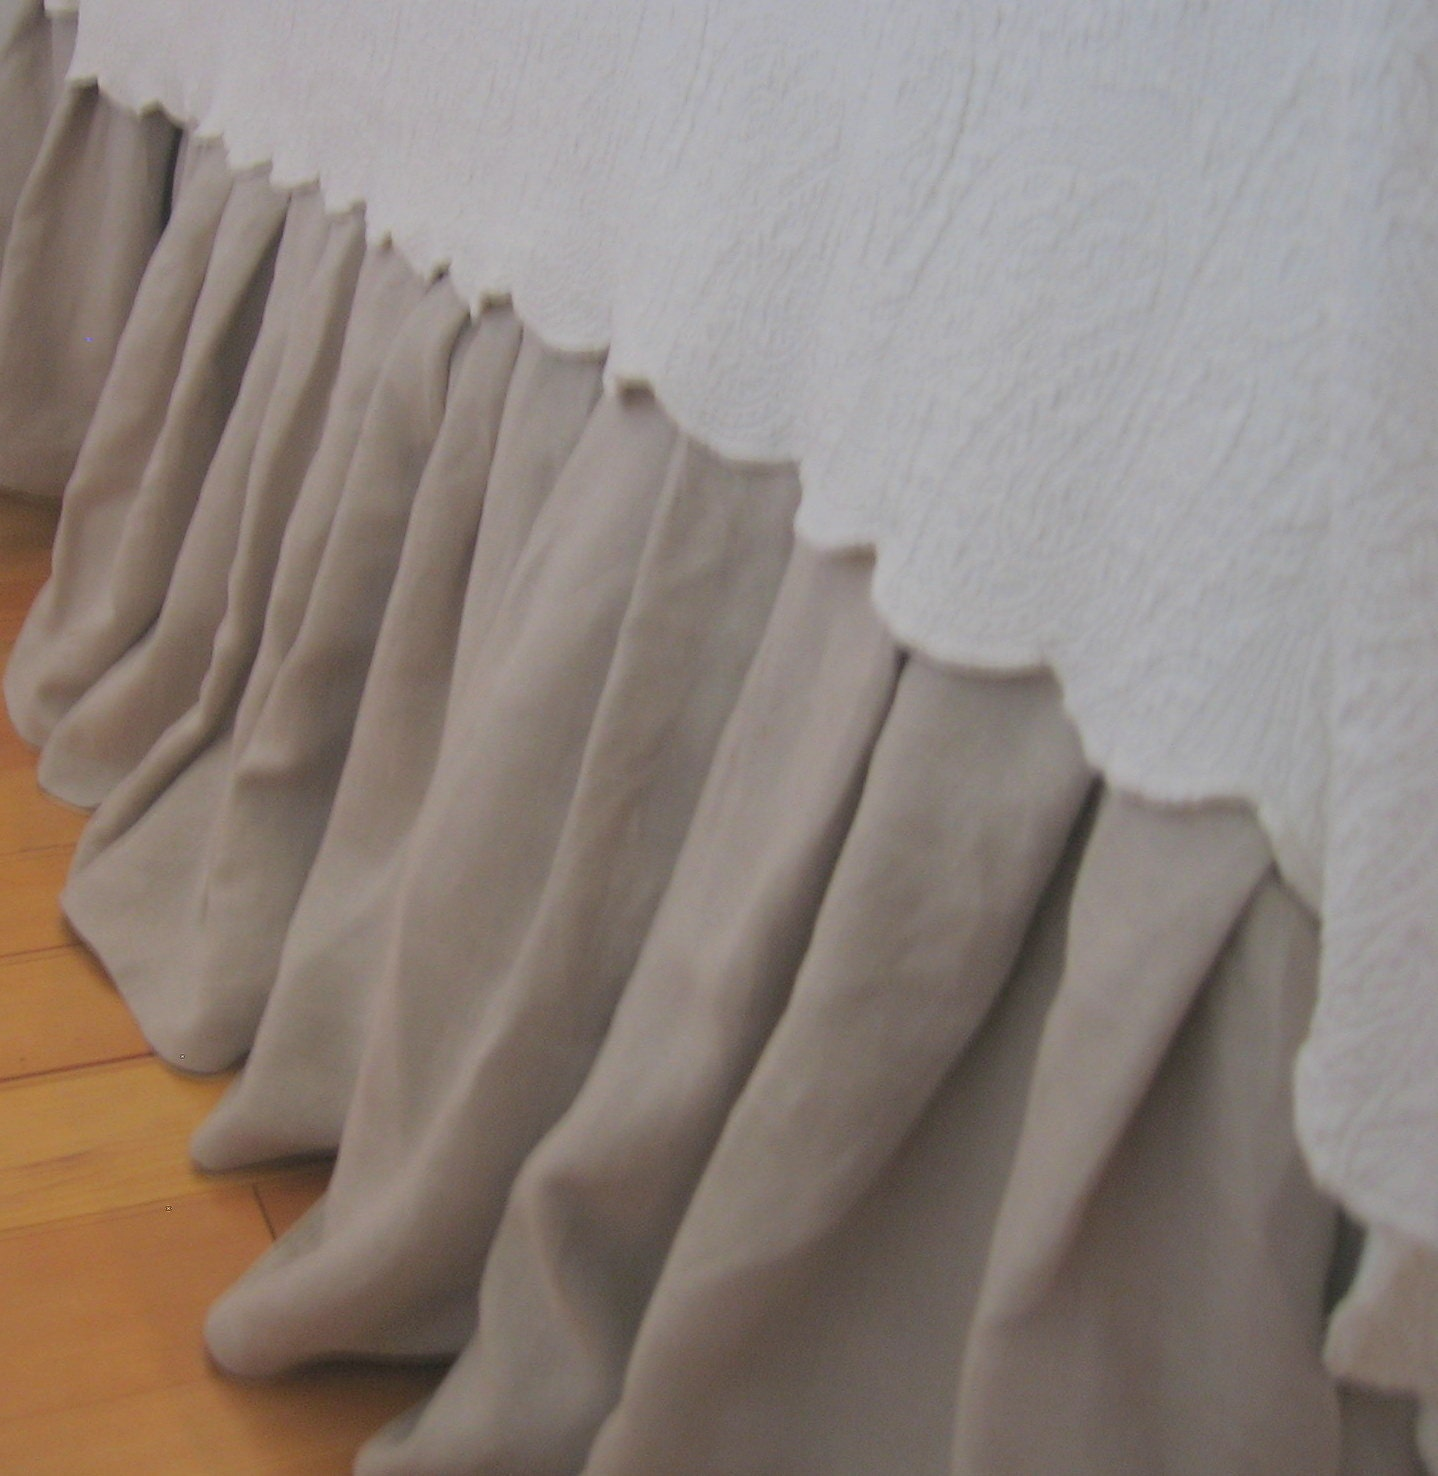 Linen Bed Skirts and Dust Ruffles Linoto's exquisite % linen bed skirts and dust ruffles are thoughtfully designed and expertly measured, cut, and sewn by our artisan craftsmen. Our linen bed skirts are constructed using substantial upholstery-weight linen and .